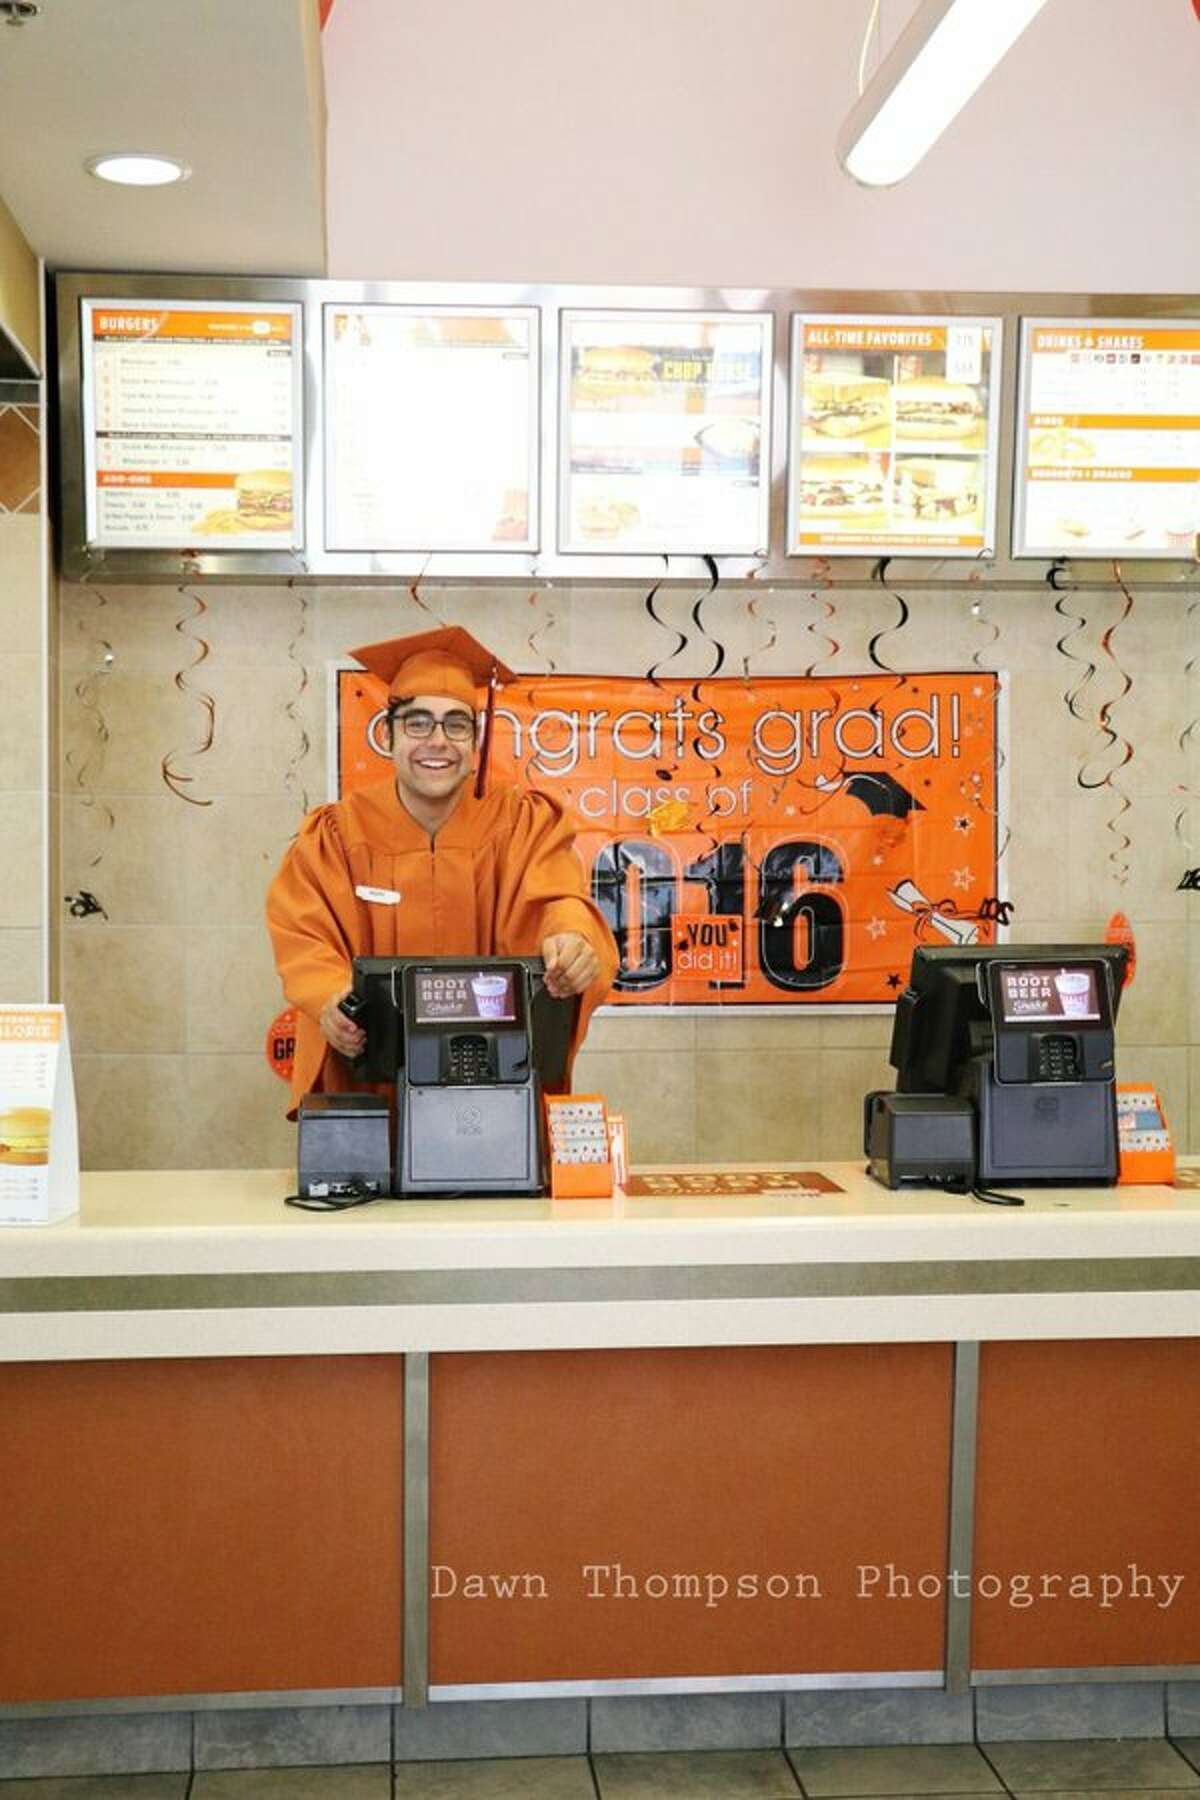 Mario Ramirez Bortolini, a 19-year-old soon-to-be graduate of James Madison High School, took his senior photos at a San Antonio Whataburger on May 21, 2016.